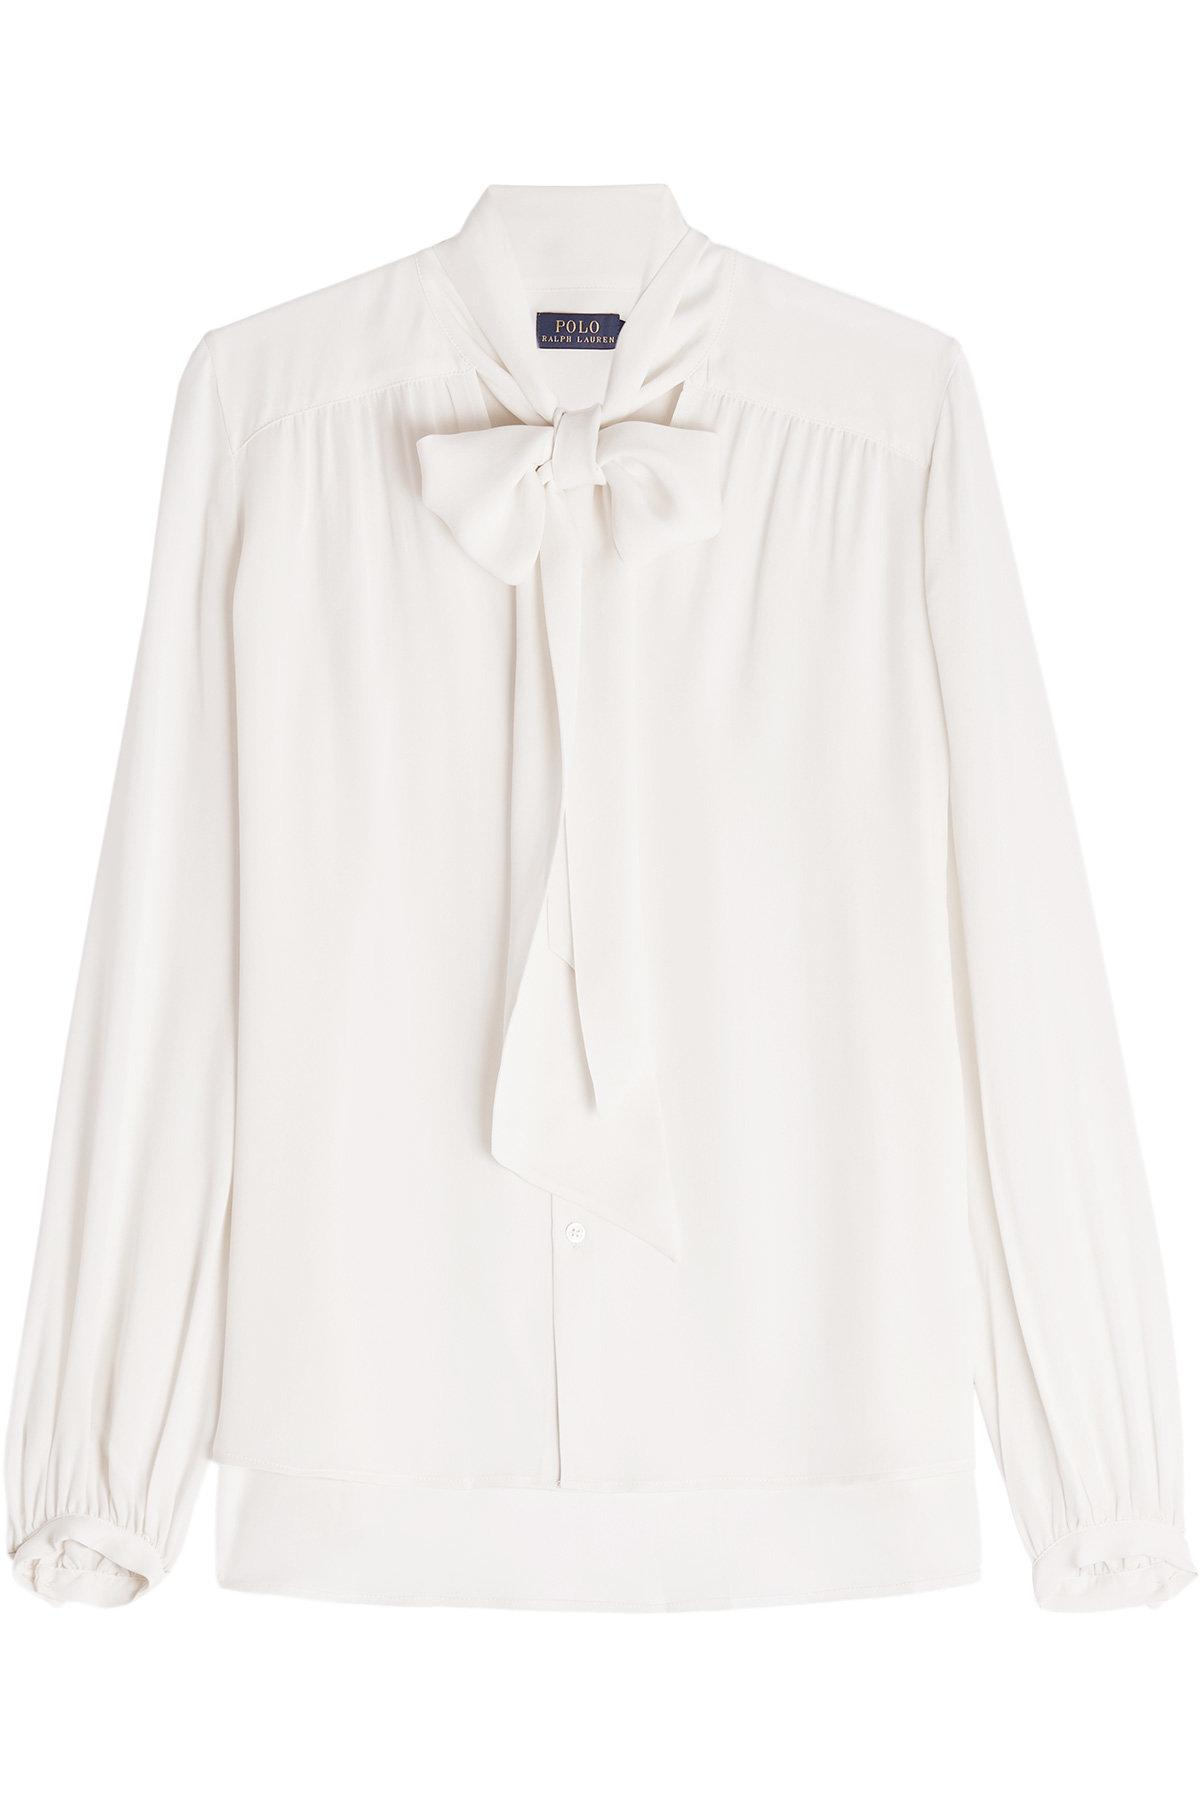 Polo Ralph Lauren Silk Blouse With Bow In White